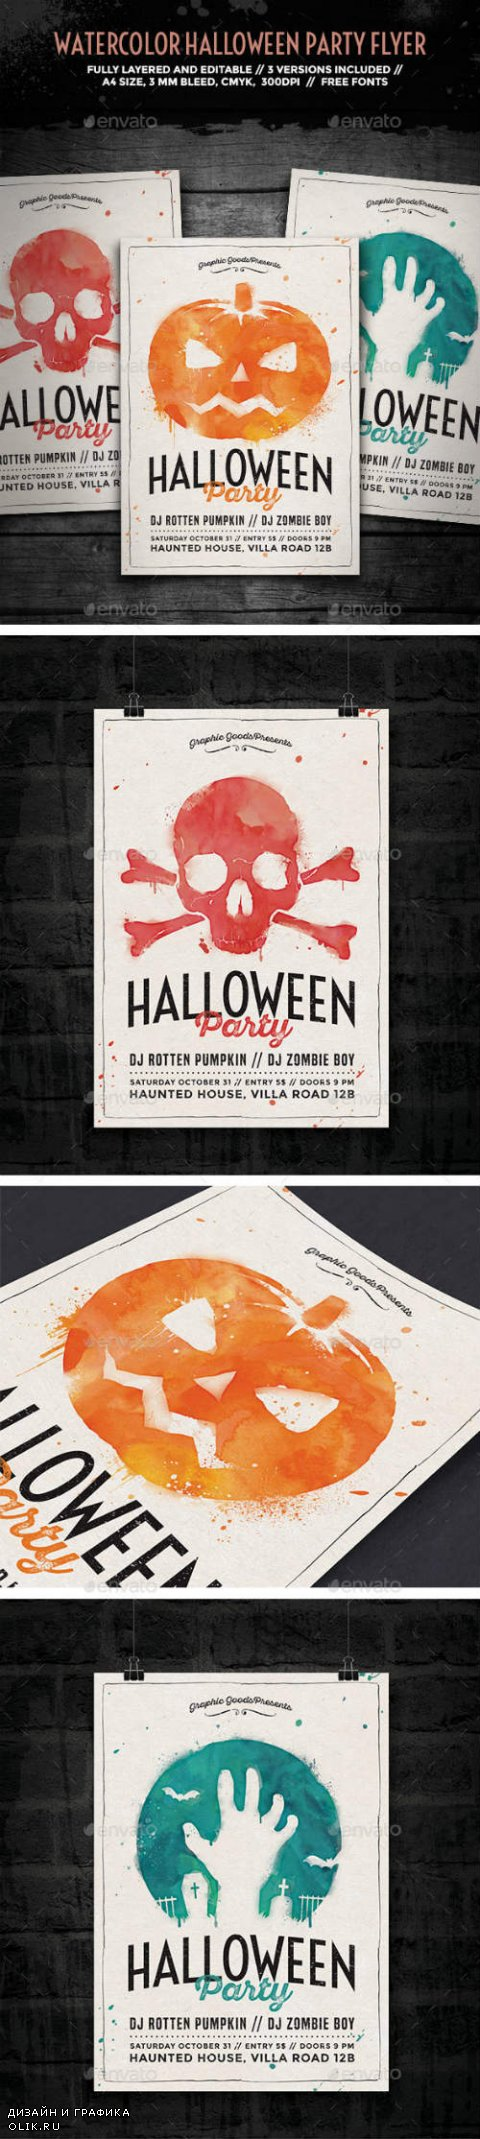 Watercolor Halloween Party Flyer 13101611